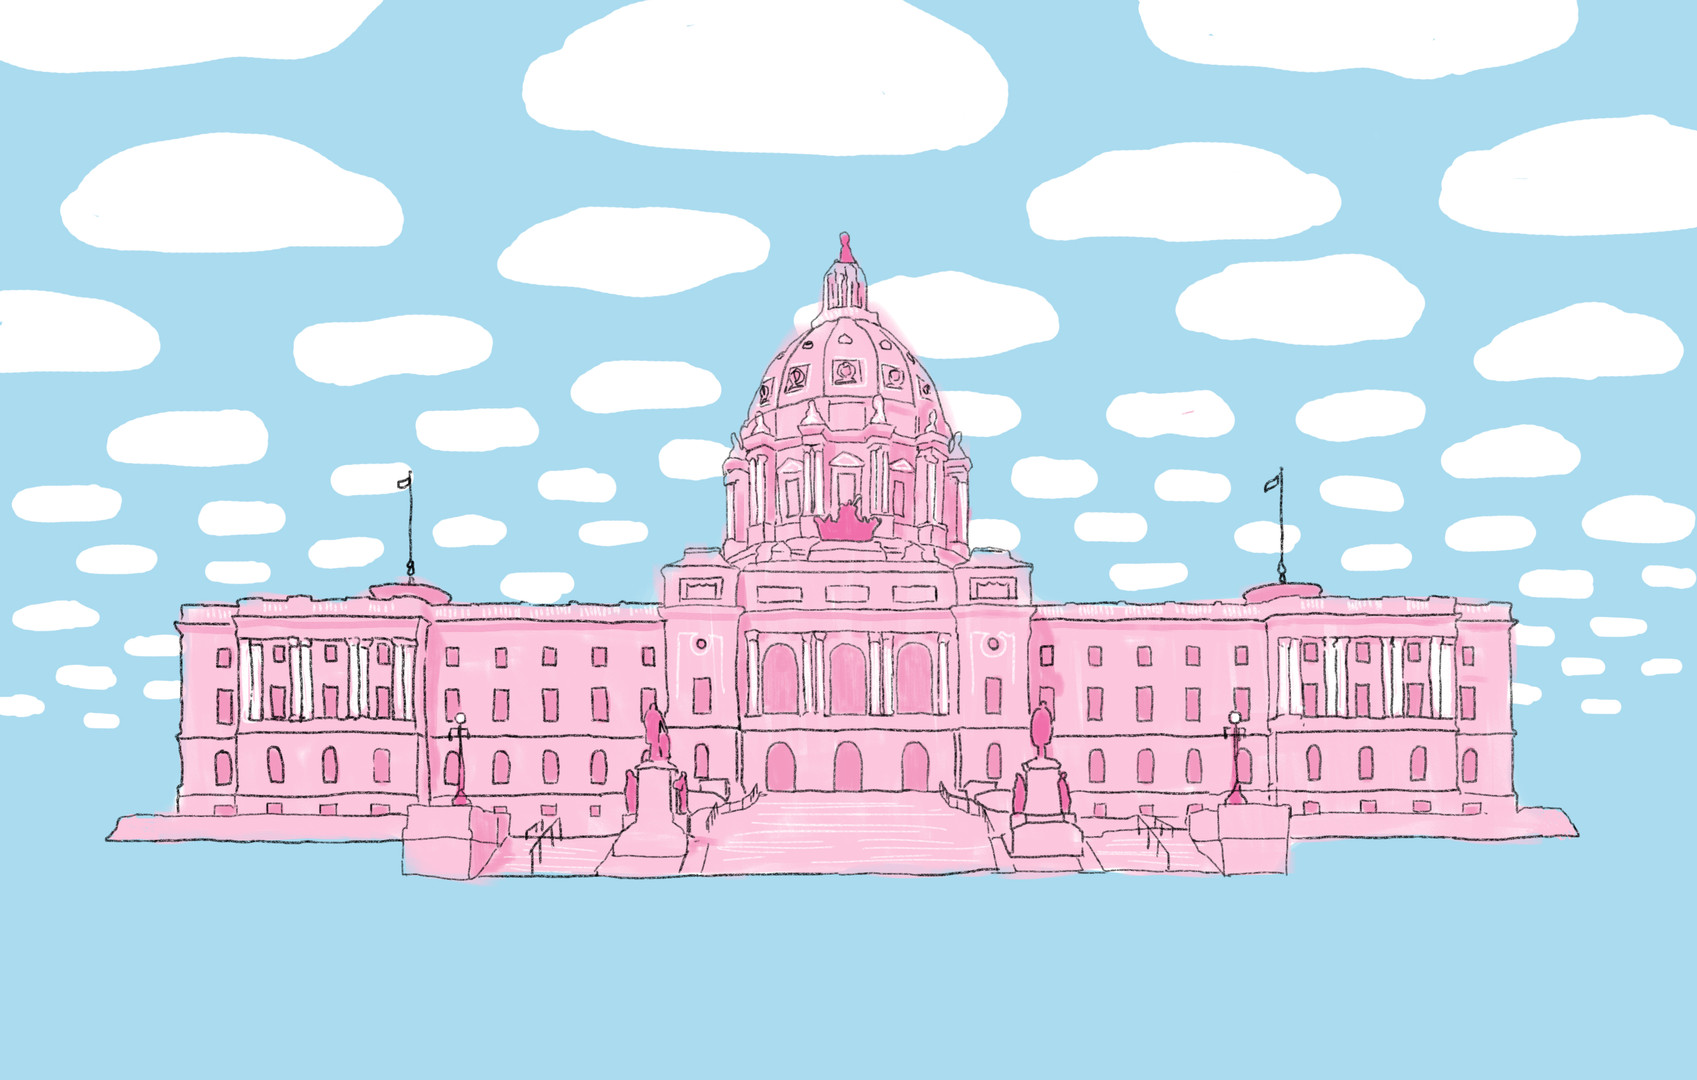 Illustration for MN Daily